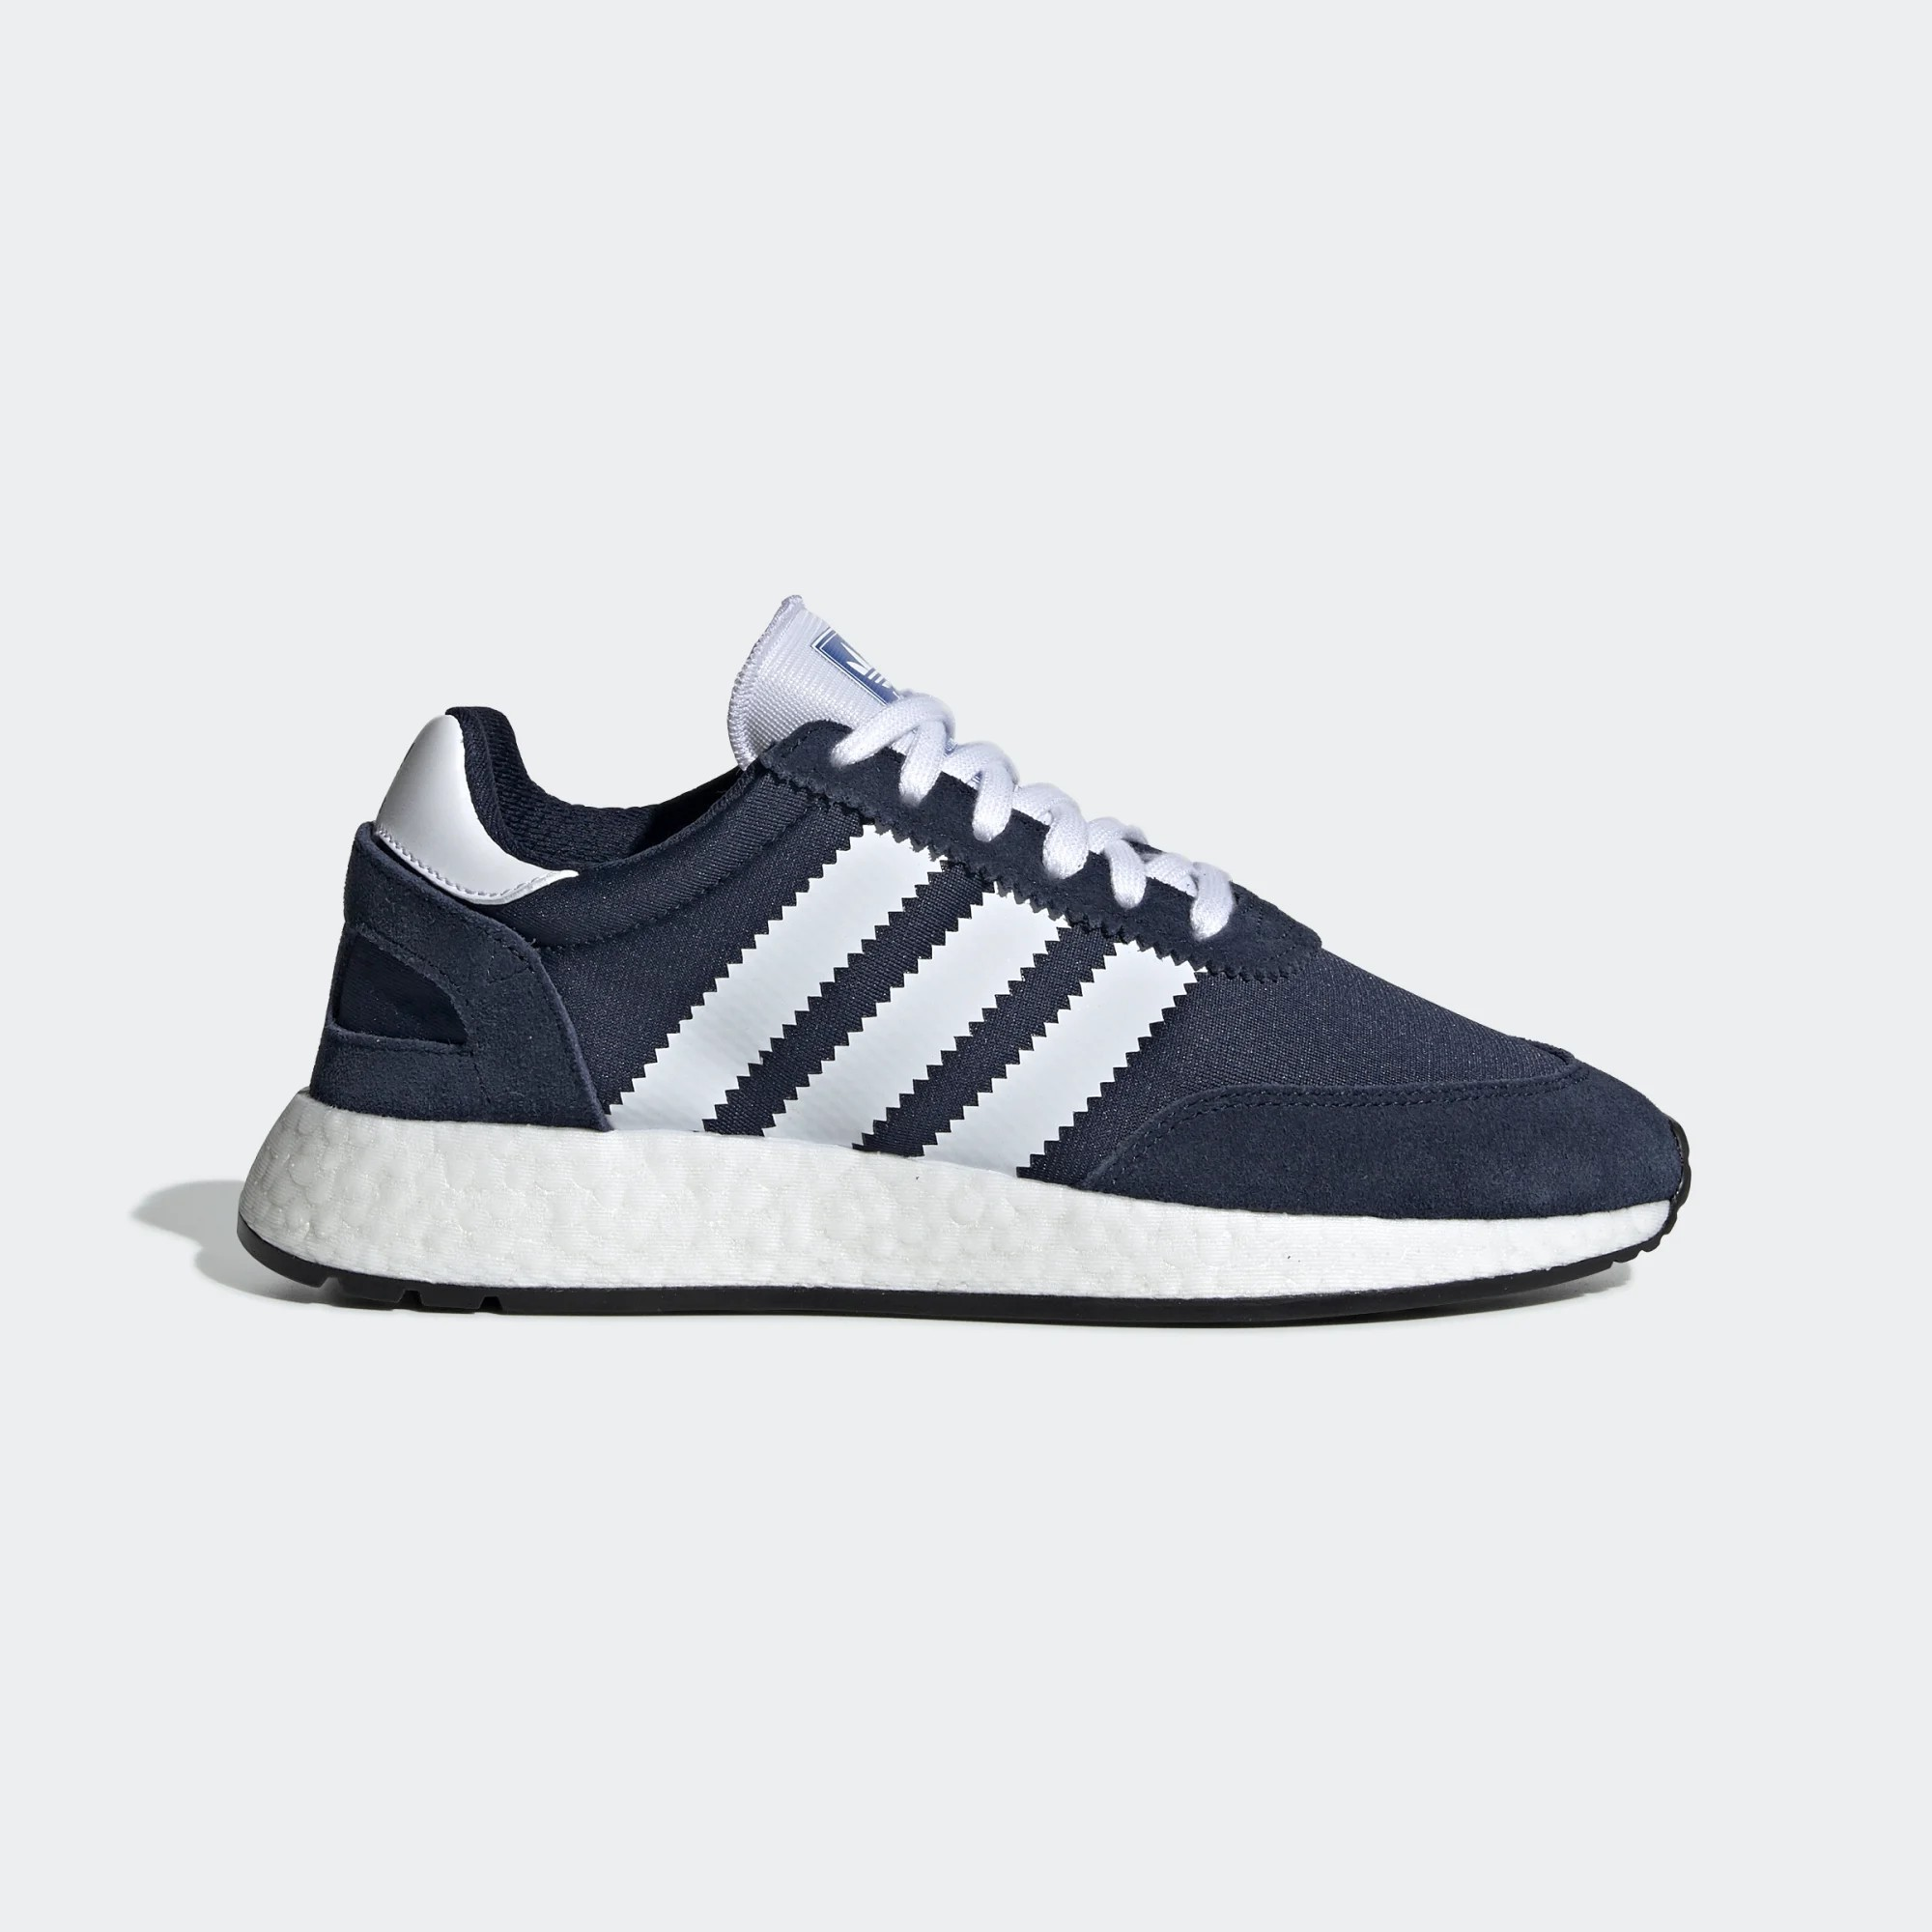 Adidas CG6038 I-5923 Femme Chaussures Navy Blanche